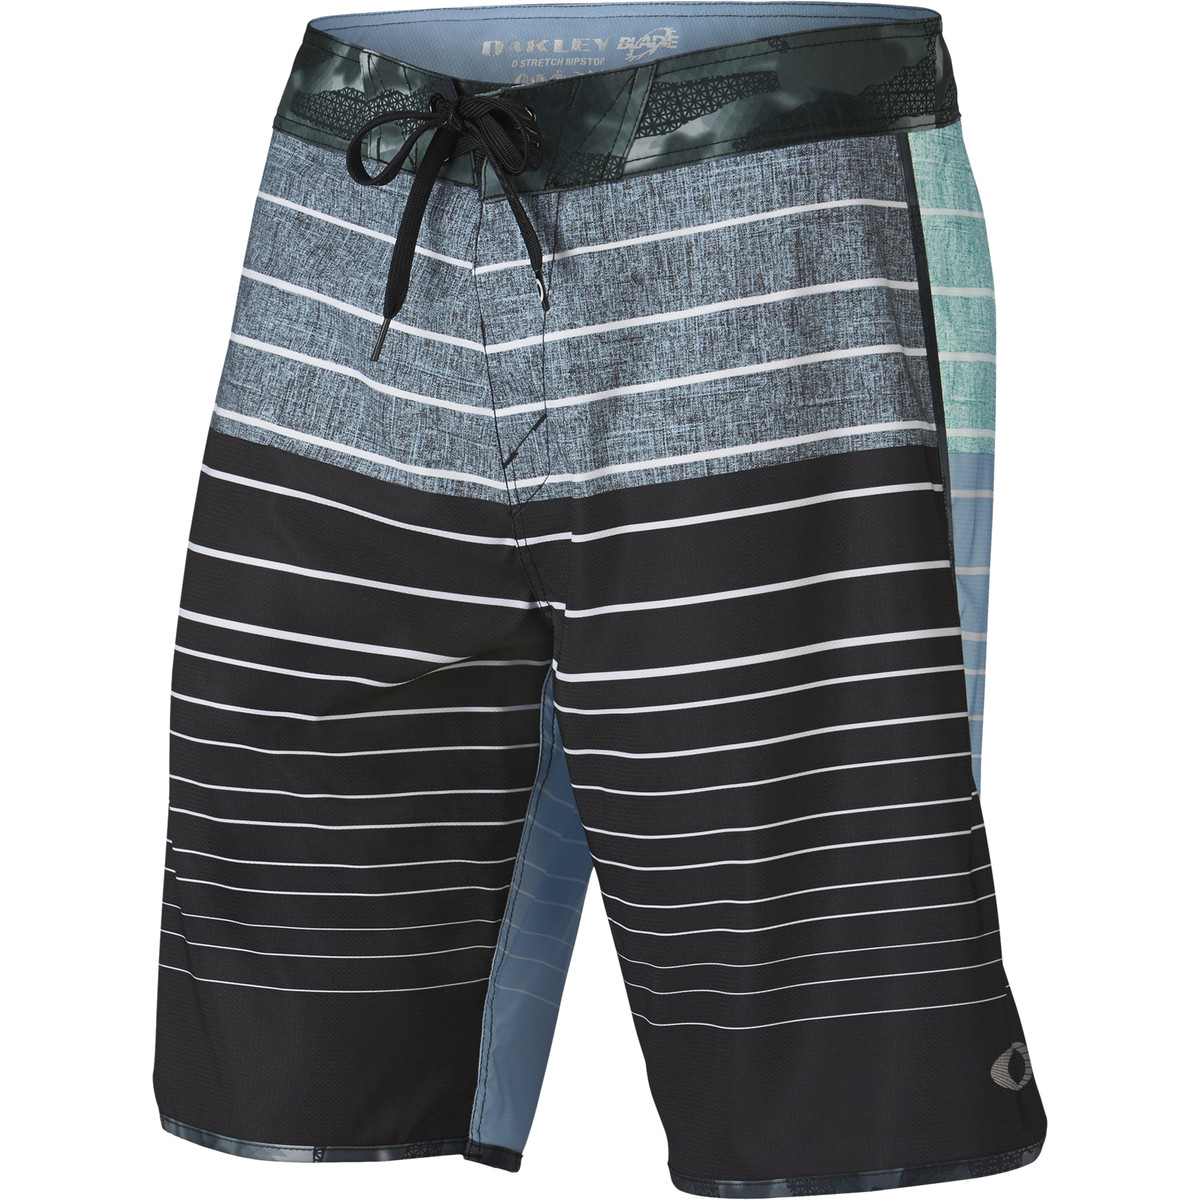 Oakley Blade Straight-Edge Board Short